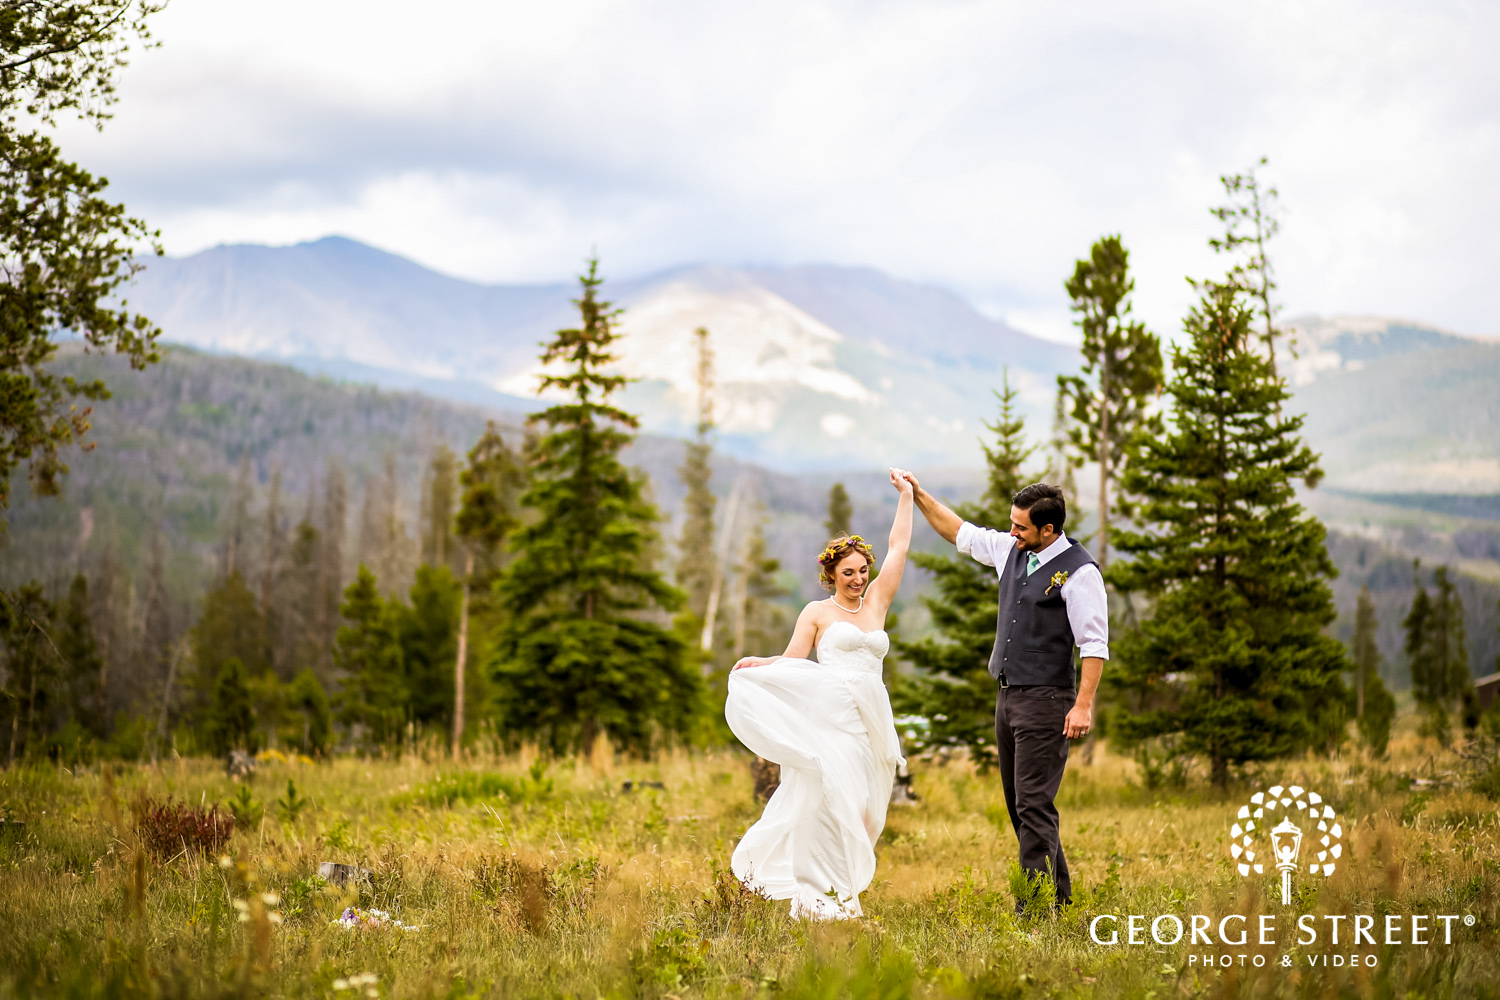 5 Reasons to Book Wedding Photo & Video From the Same Studio